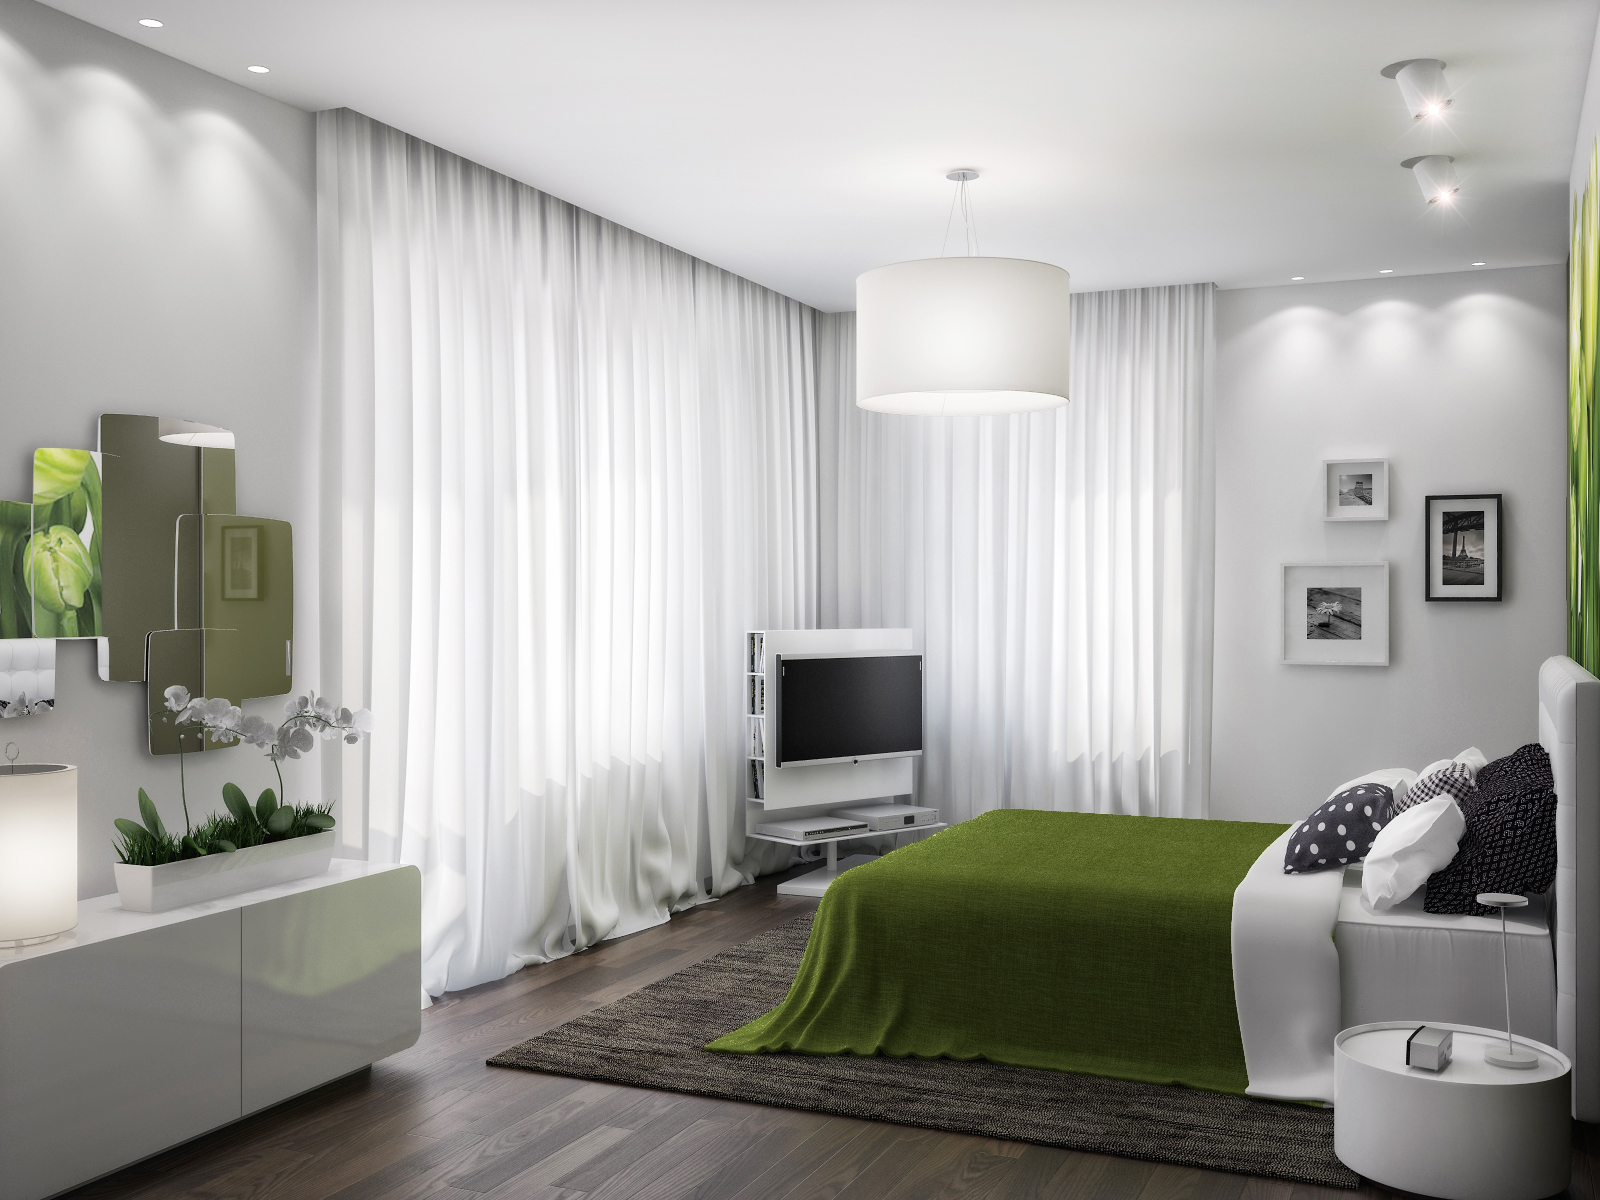 Green white bedroom scheme interior design ideas for Green bedroom design